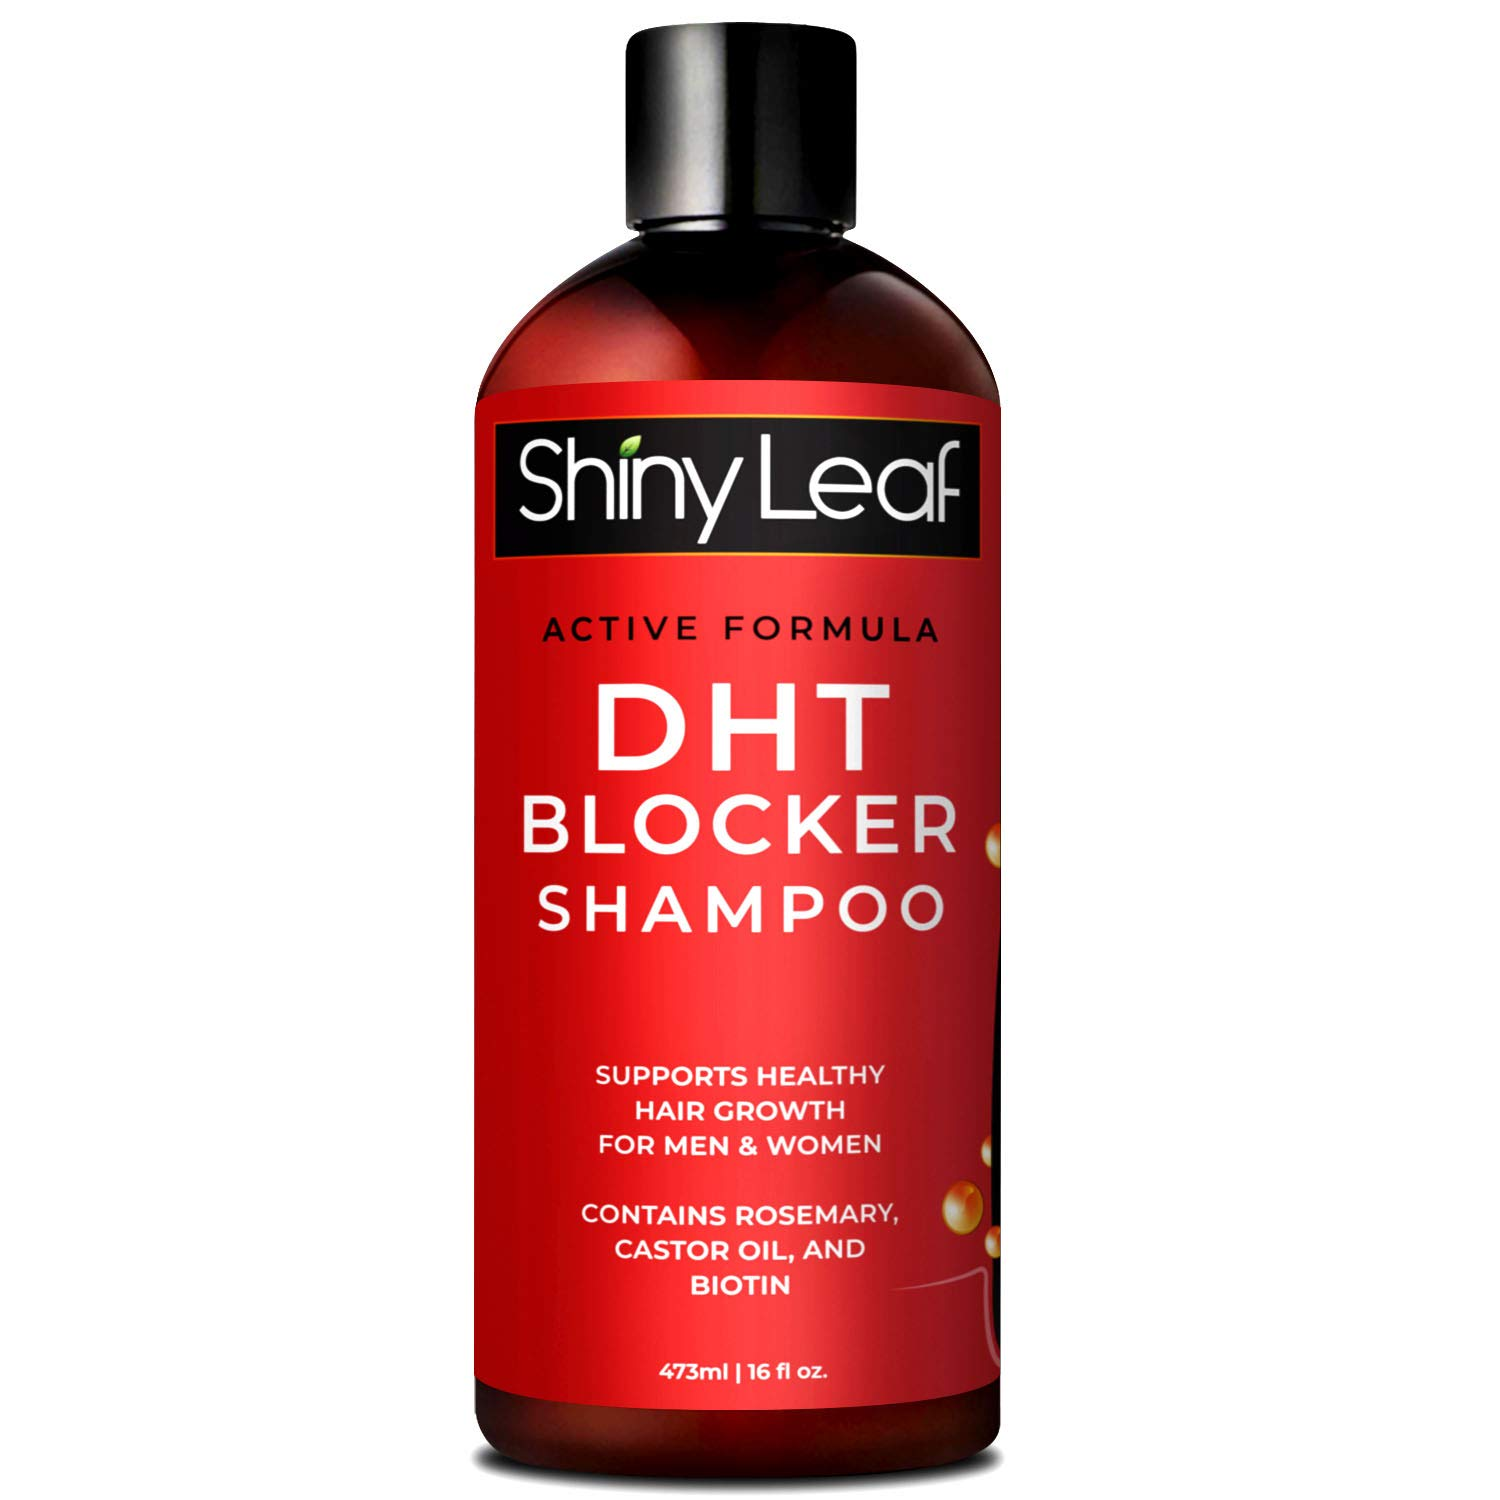 DHT Blocker Shampoo for Hair Loss, for Men & Women, Active Formula, Natural DHT Blocking Shampoo for Hair Growth